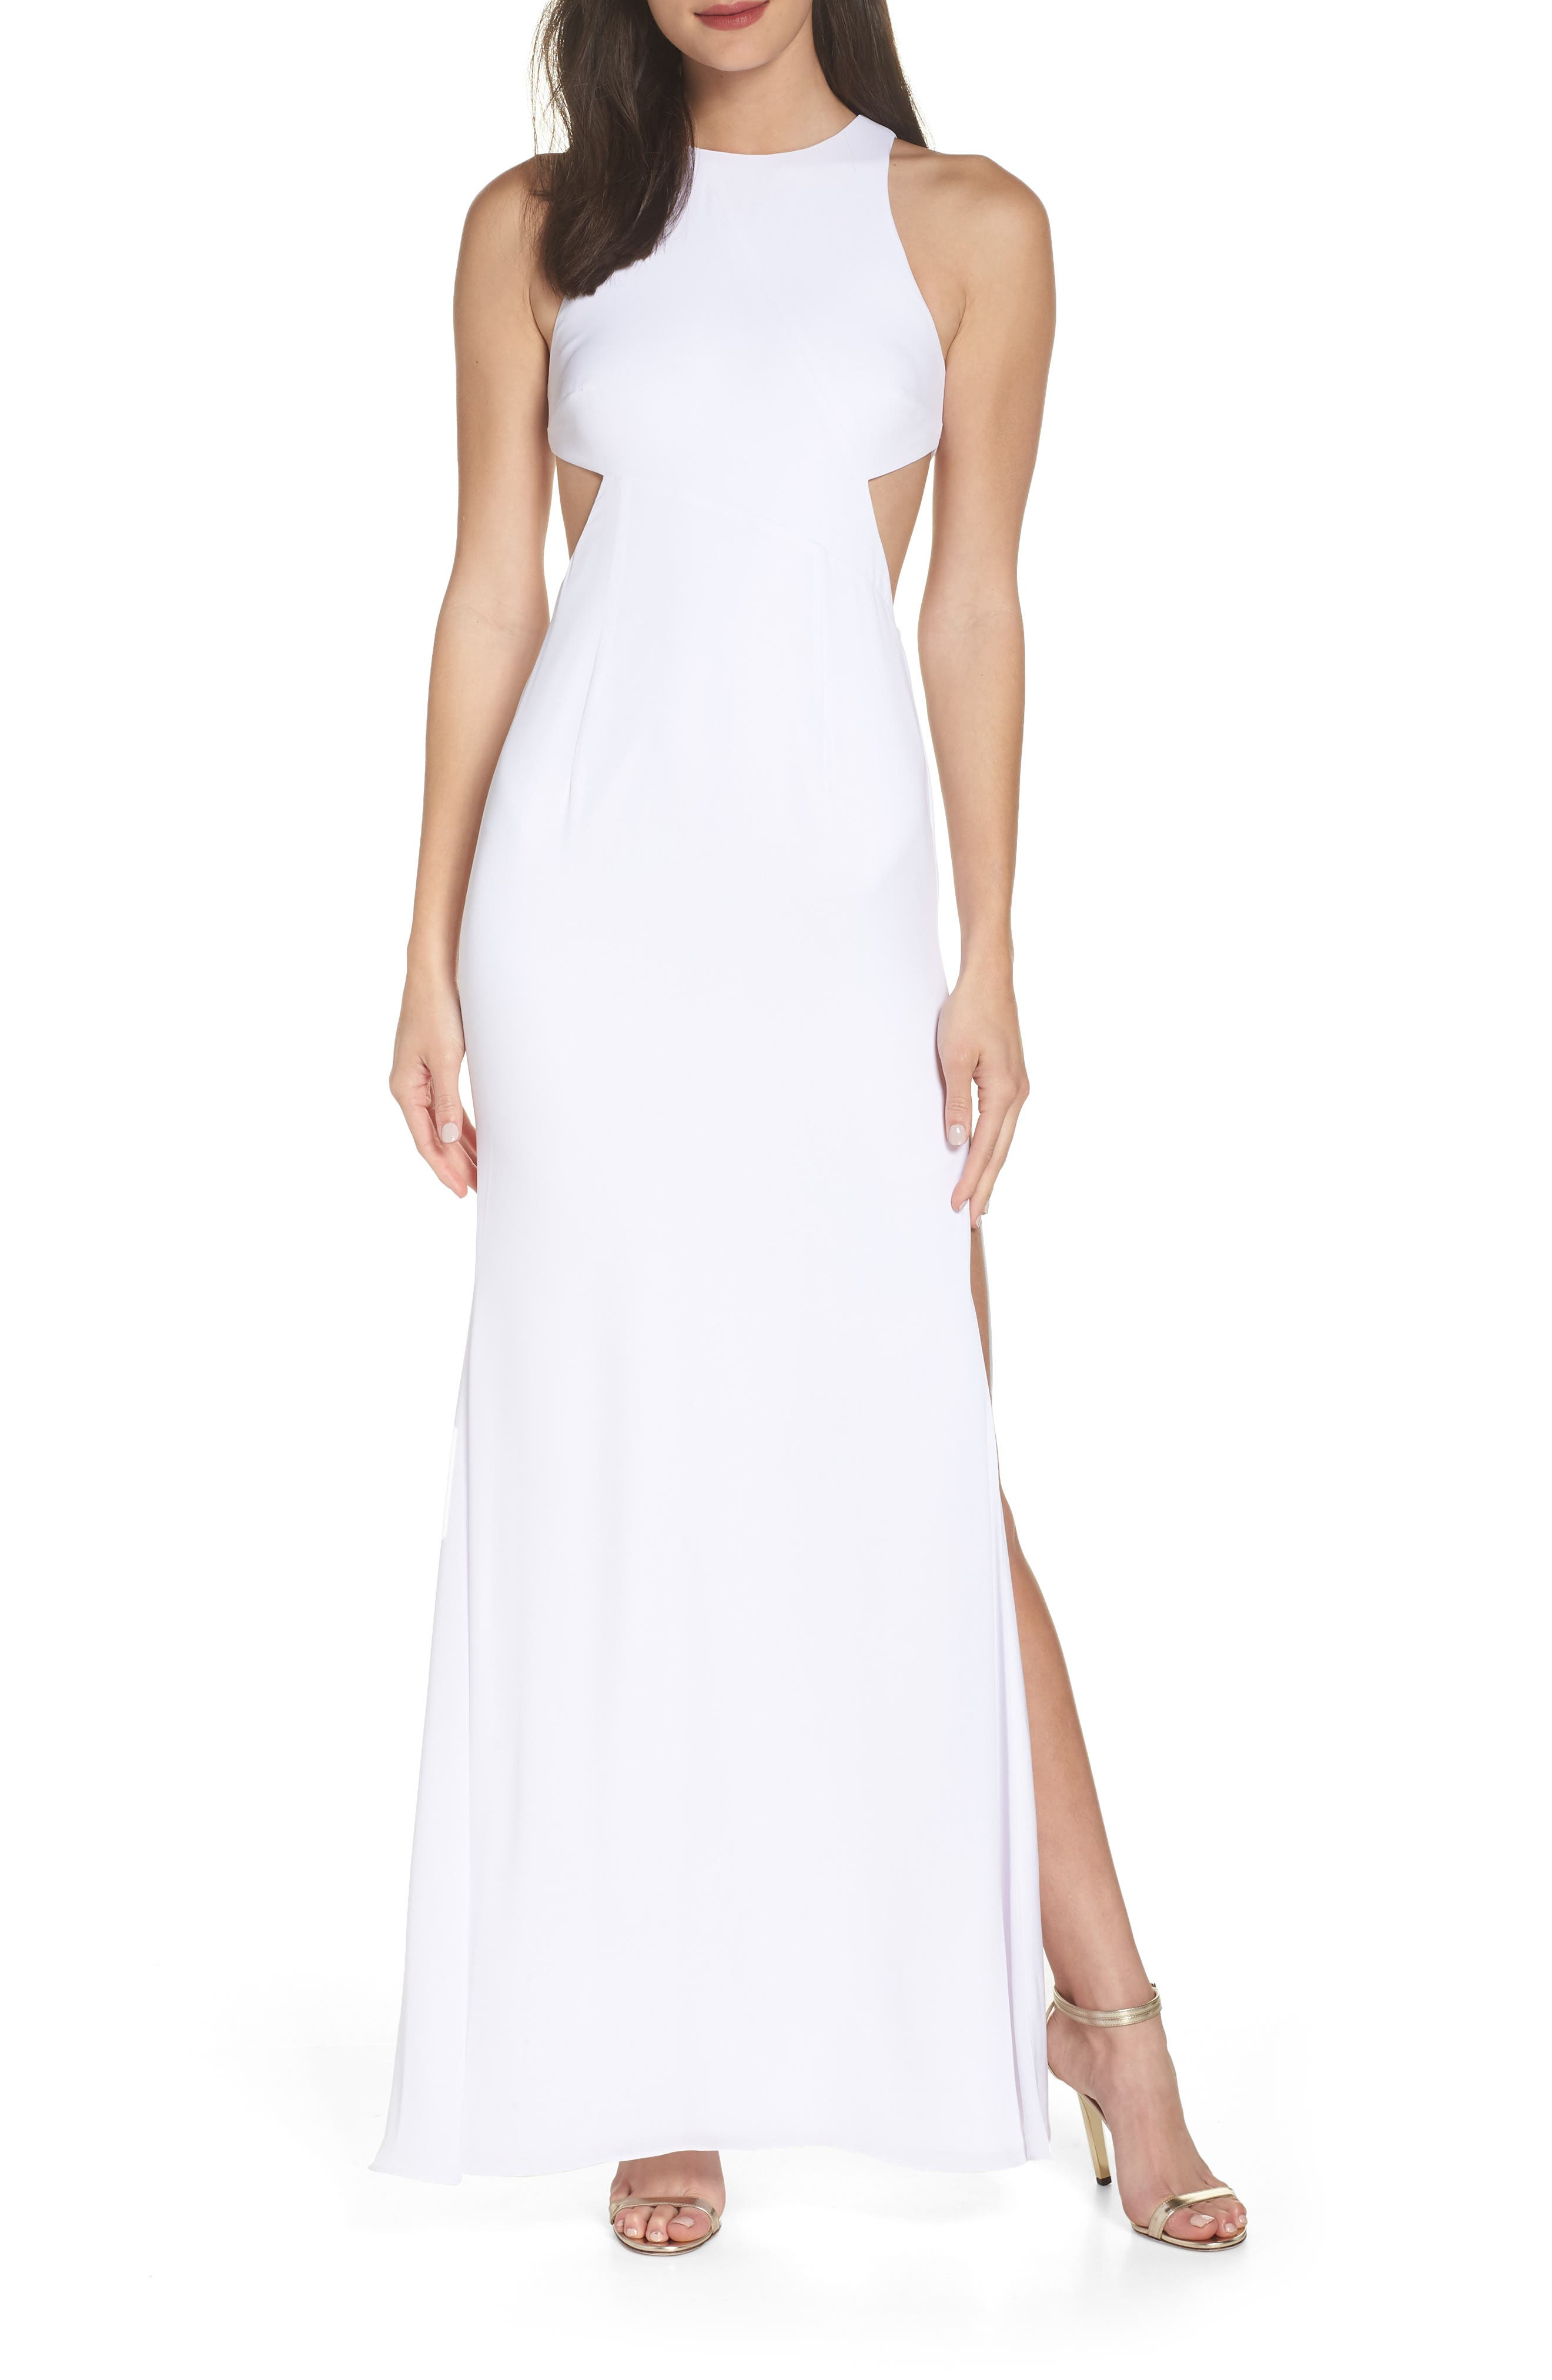 Fame & Partners The Midheaven Gown,                             Main thumbnail 1, color,                             WHITE